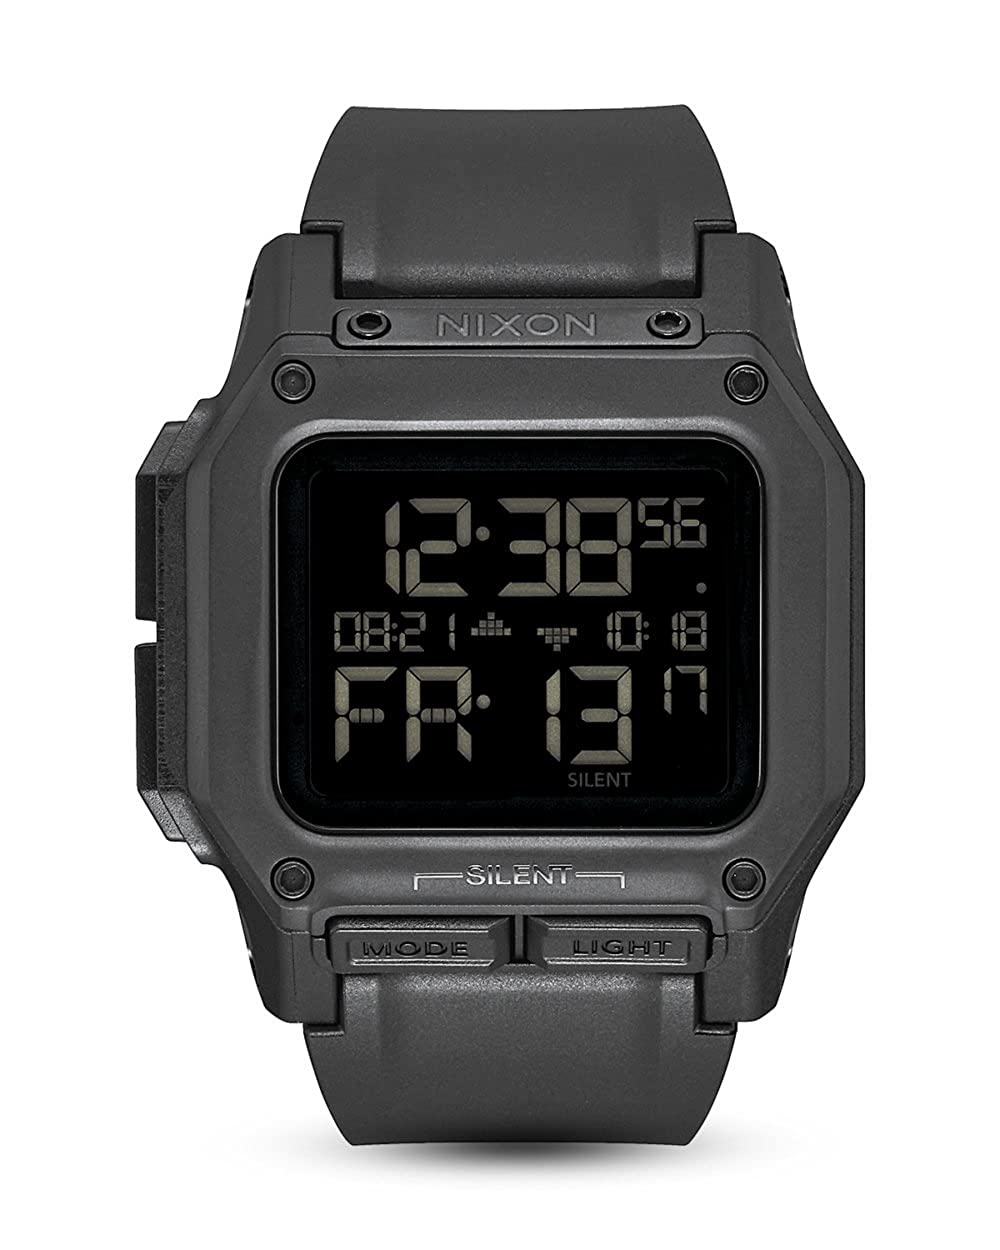 TALLA One Size. RELOJ NIXON REGULUS ALL NEGRO